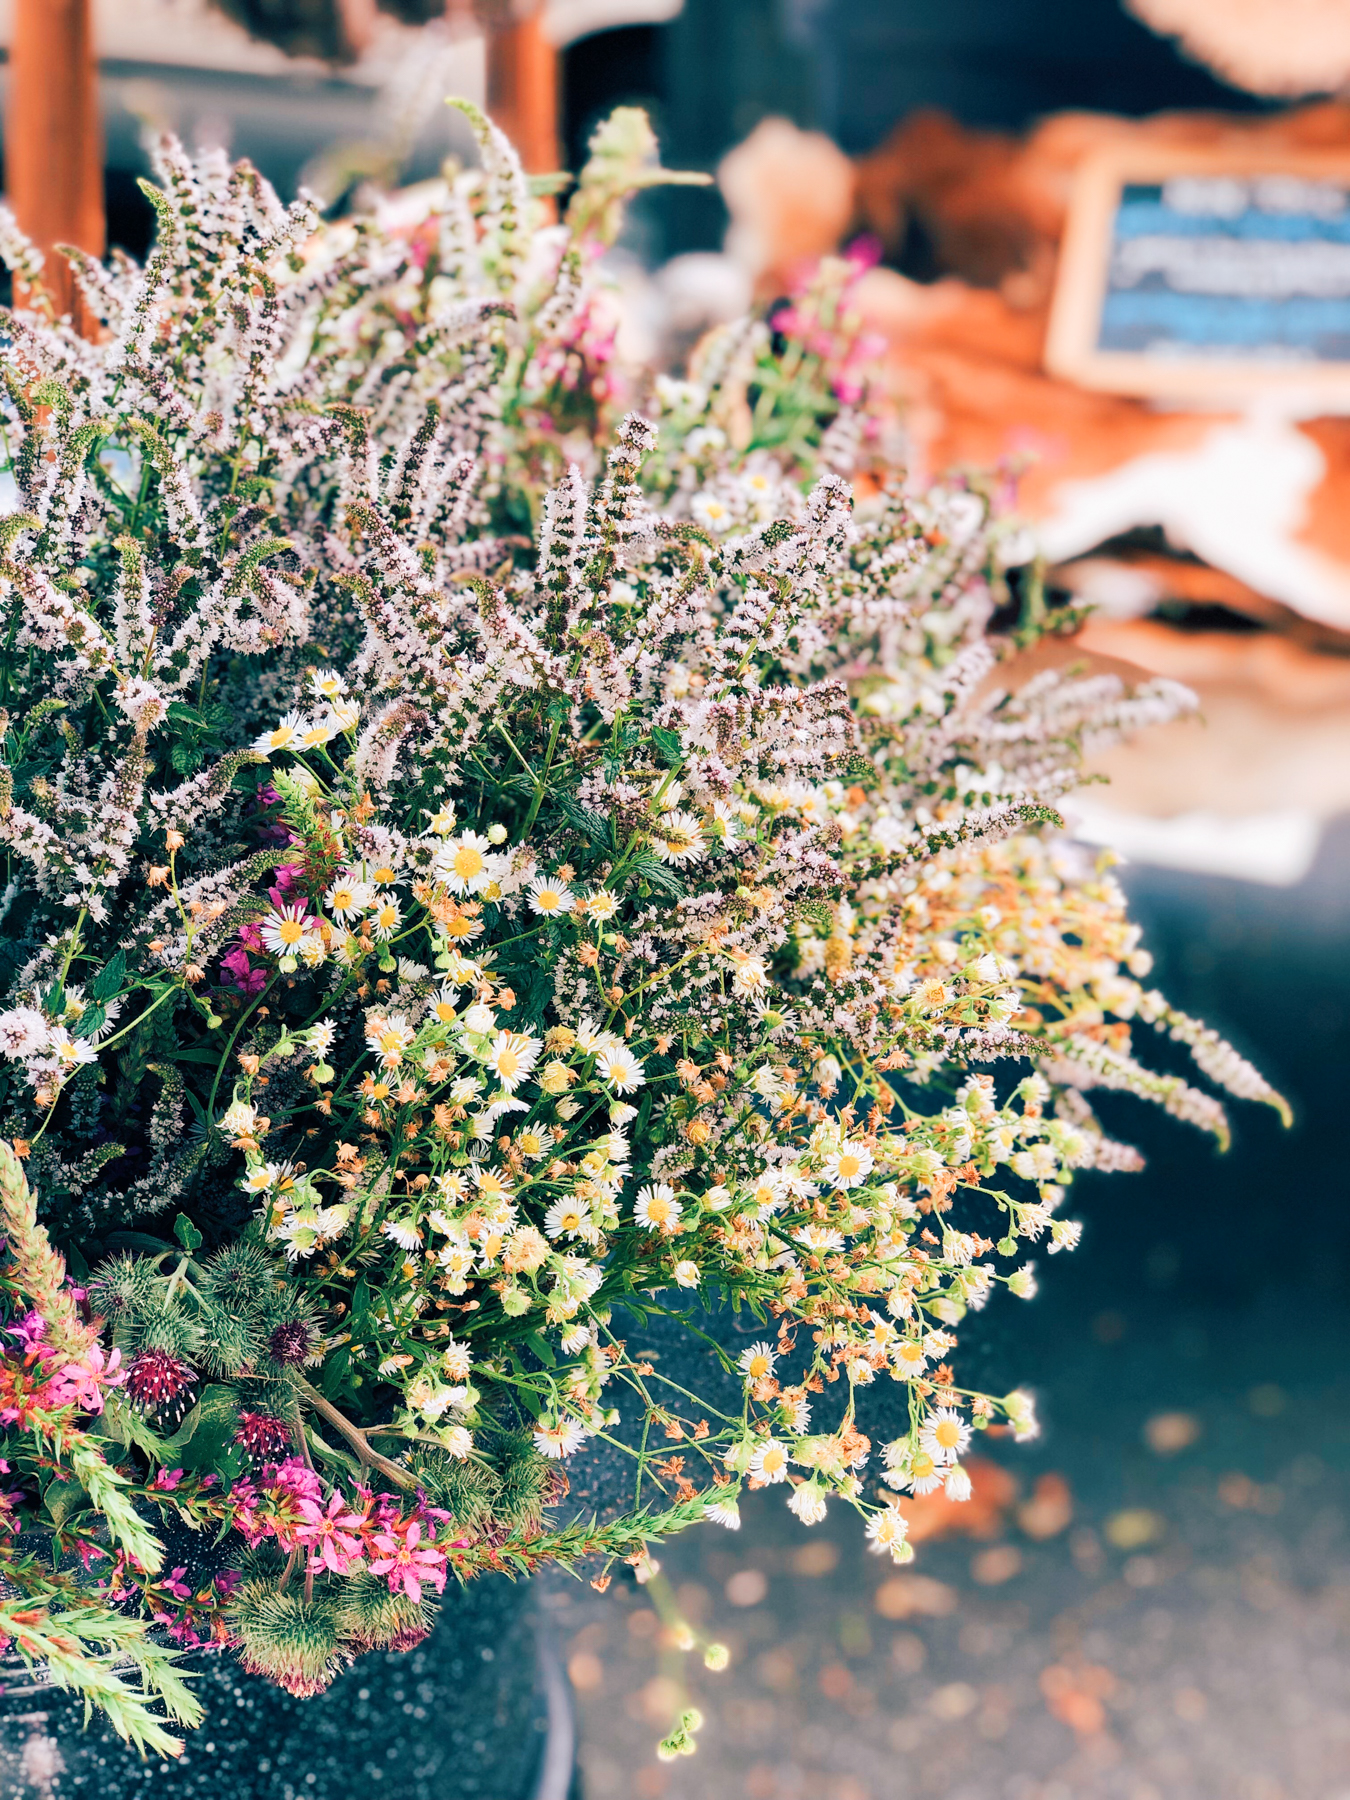 Fresh flowers at the 79th St. Greenmarket